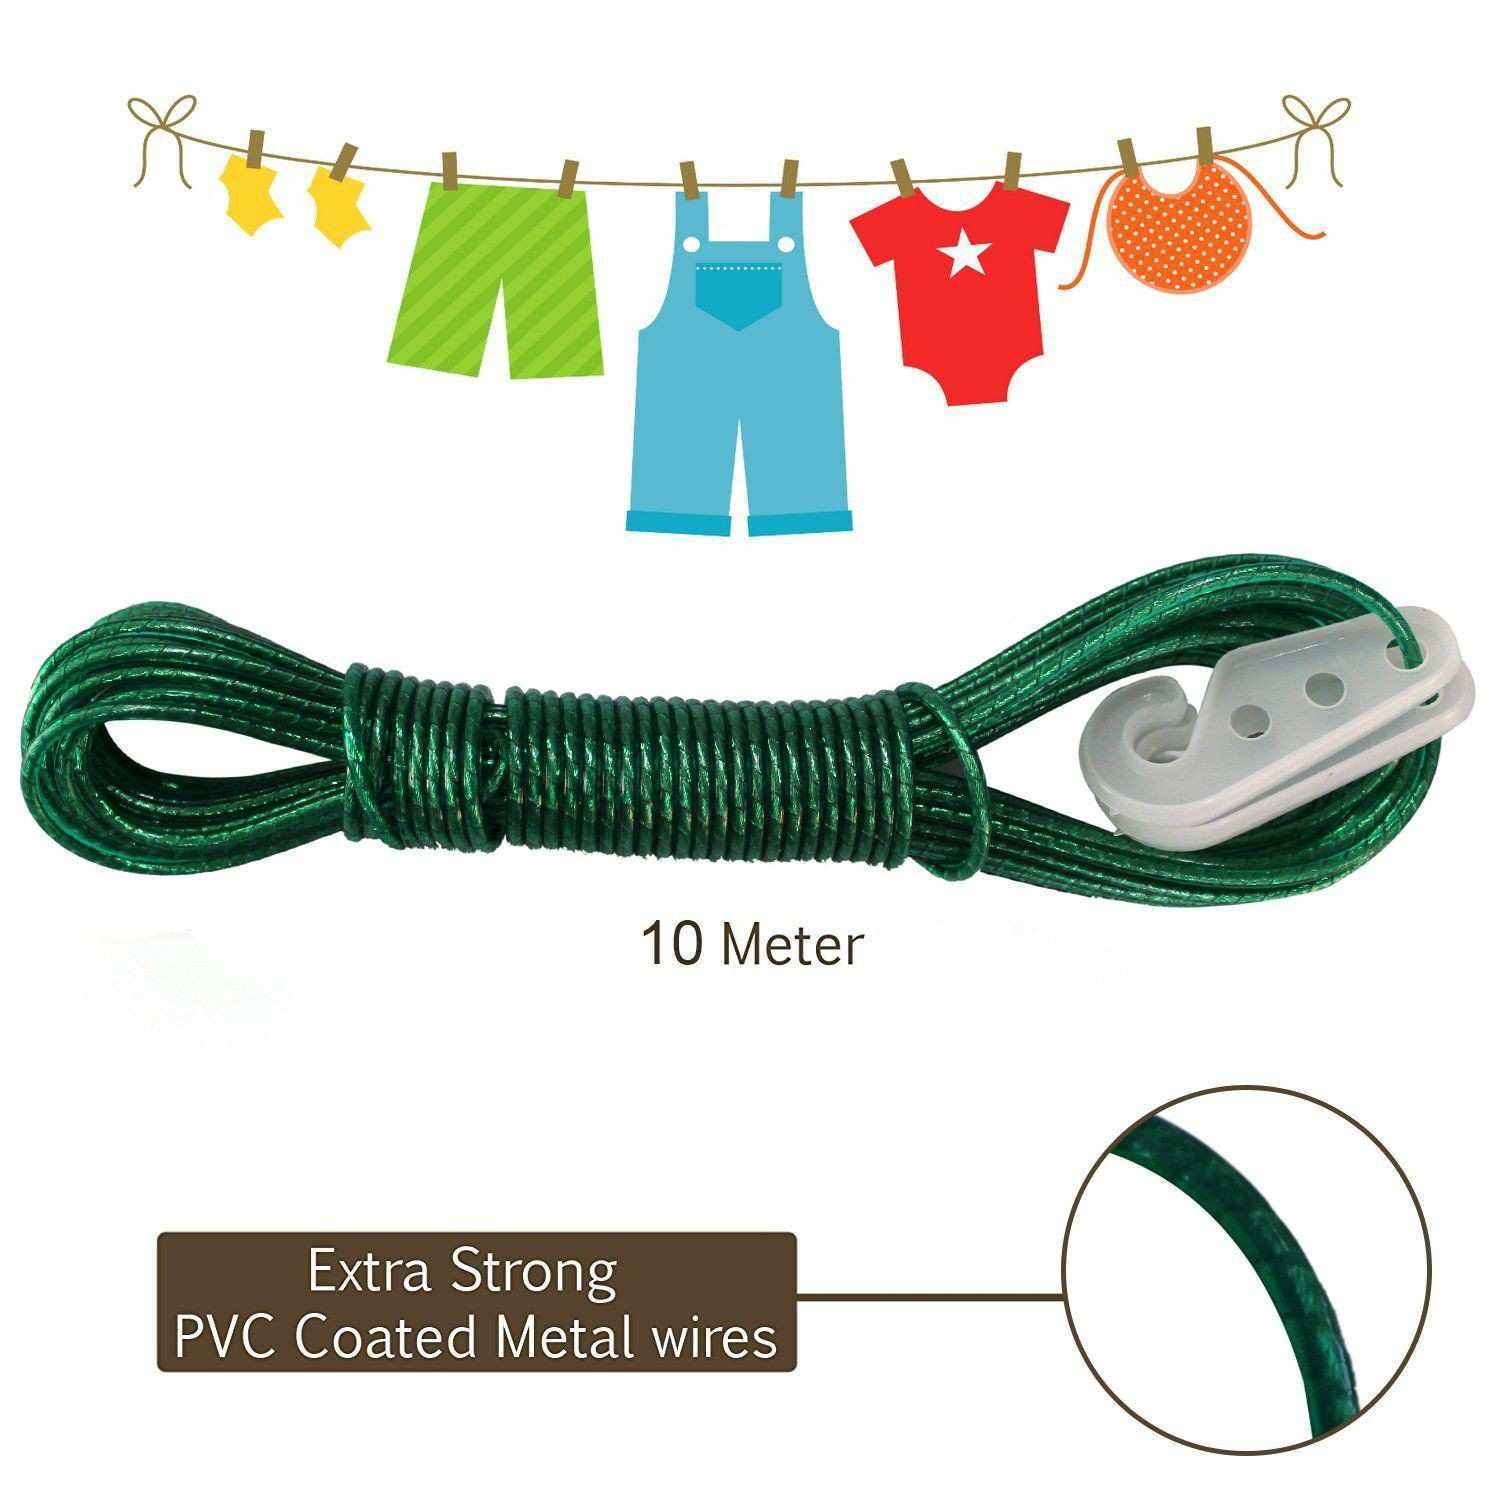 AllExtreme 10 meter PVC Coated Steel Anti Rust Wire Rope Washing